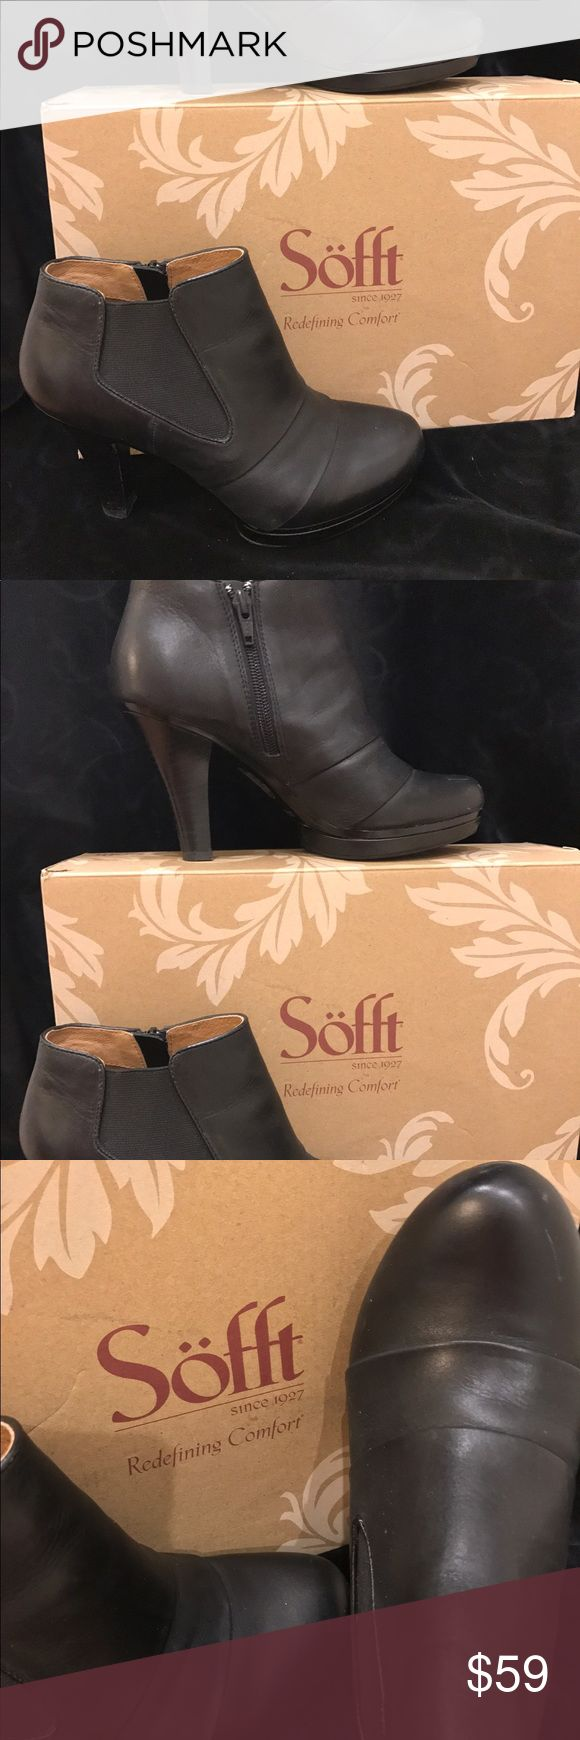 """Sofft Black Ankle Booties Worn 2 times!!! Sofft Black Ankle Boots European design meets modern comfort in a contemporary platform bootie styled with geometric side goring and a striking pleated vamp. Size 7.5, 2 3/4"""" boot shaft, 4"""" heel, Side zip closure, Leather upper and lining/synthetic sole. Worn only a few times. Excellent condition. Sofft Shoes Ankle Boots & Booties"""